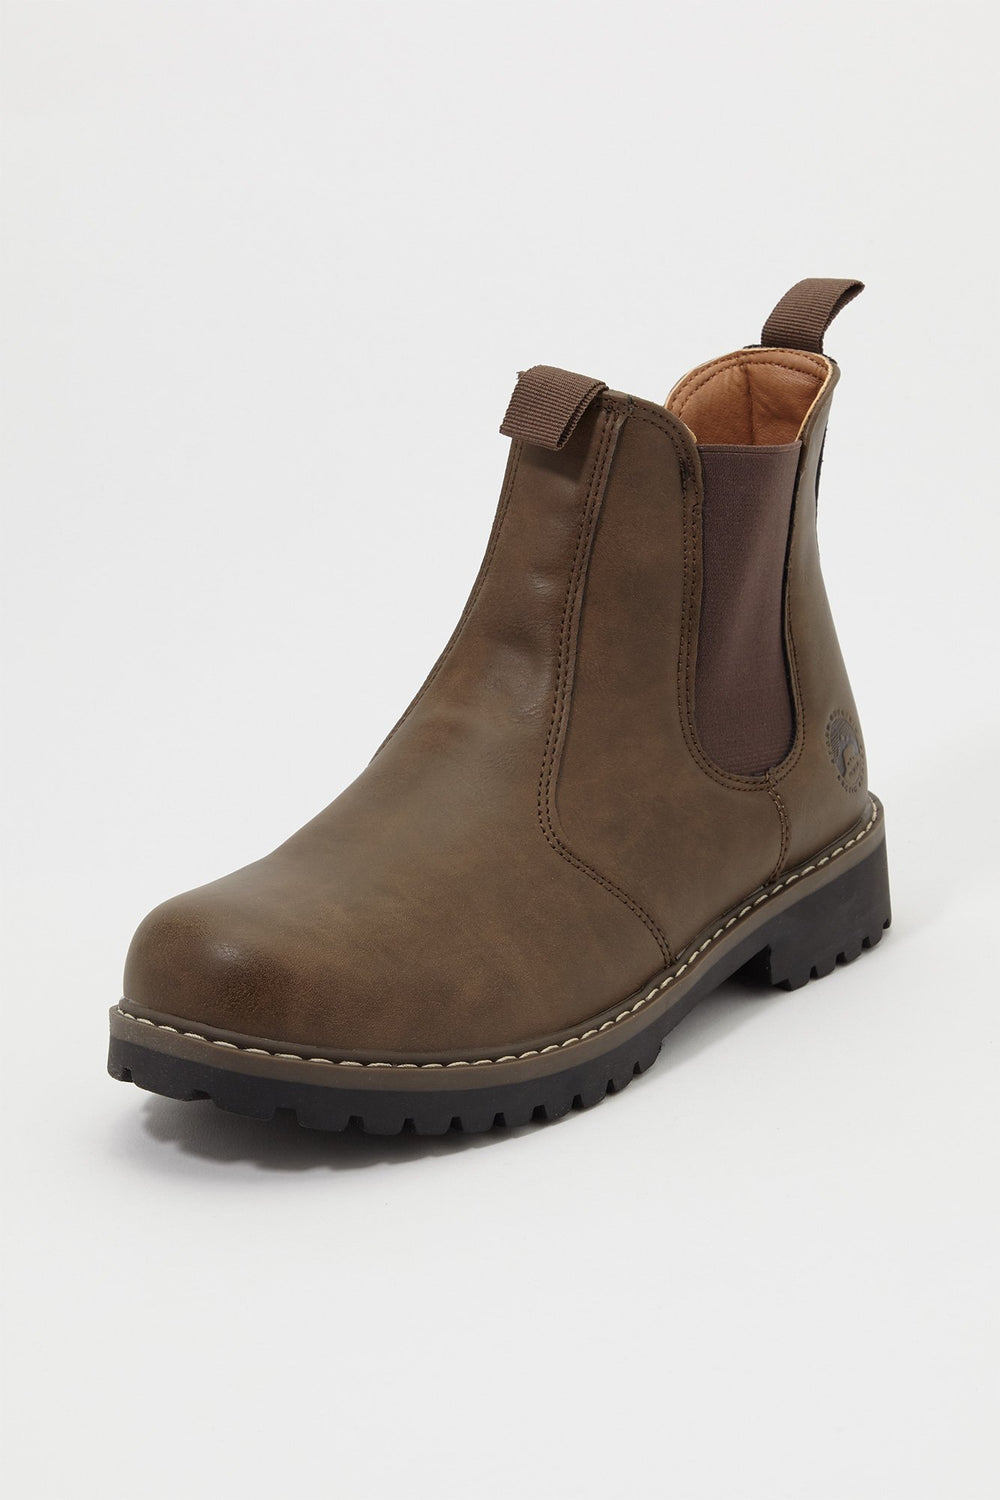 Storm Mountain Mens Pull-On Chelsea Boots Brown